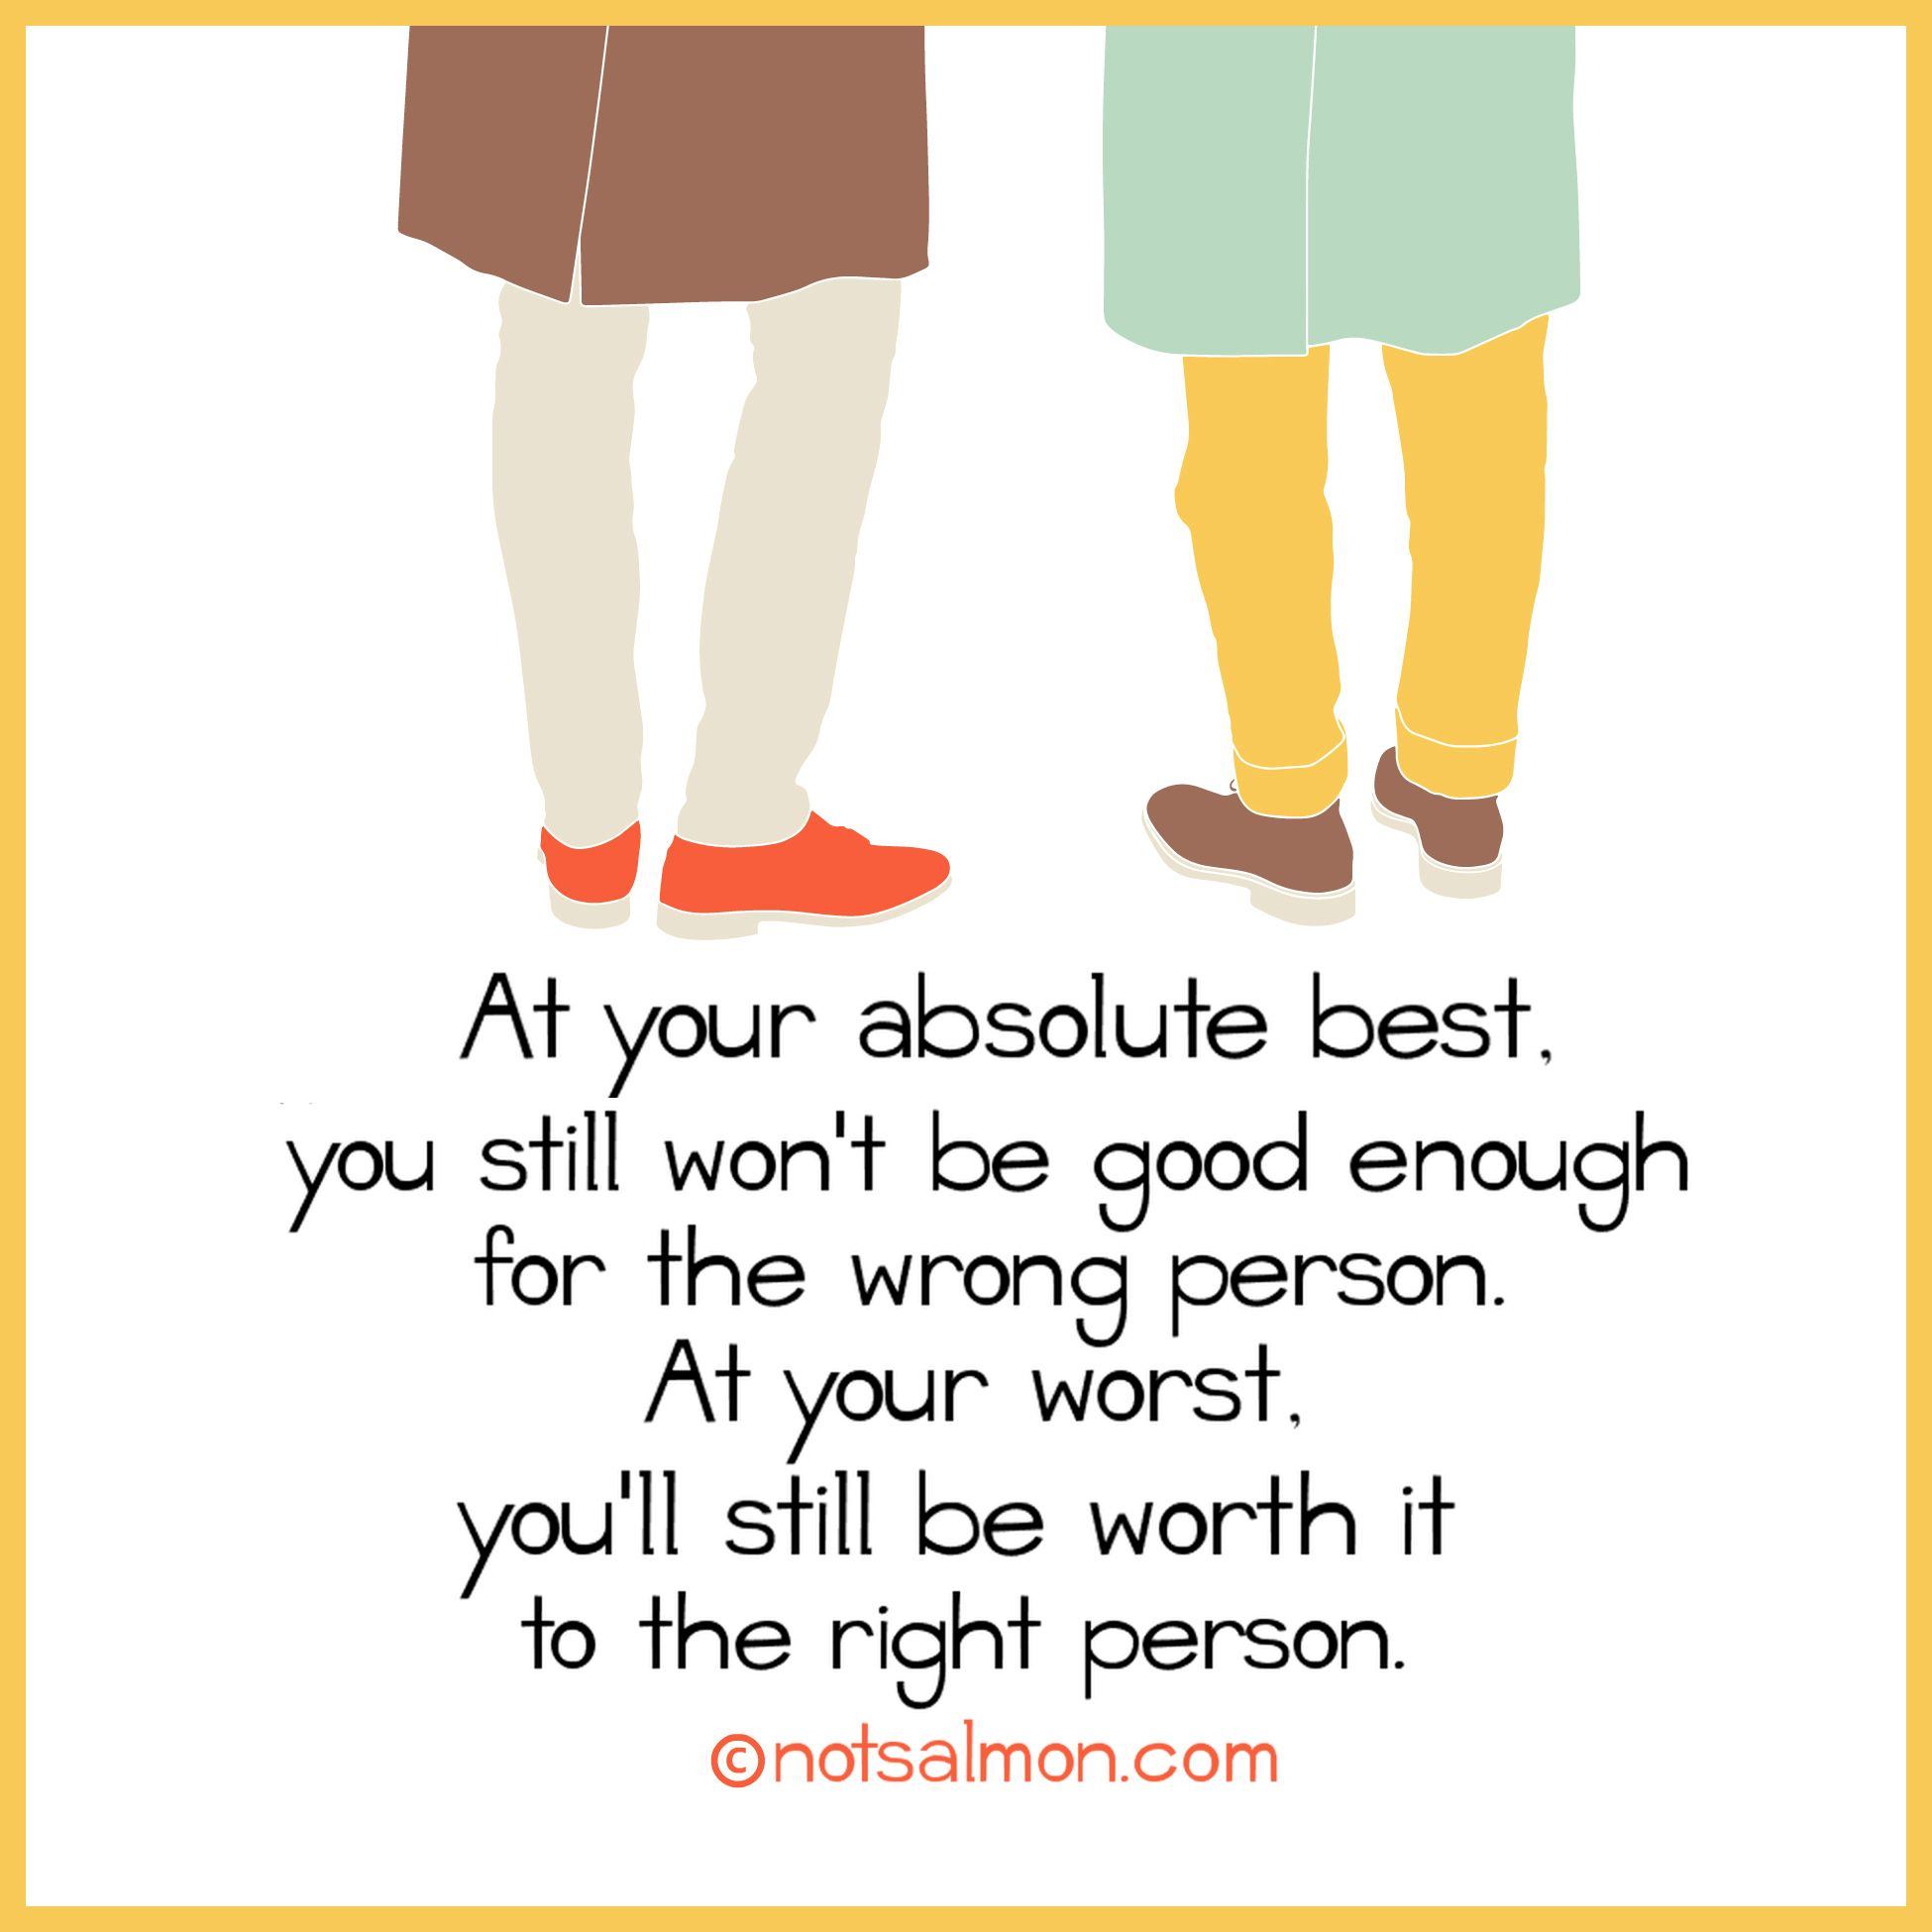 At Your Absolute Best You Still Wonu0027t Be Good Enough For The Wrong Person.  Spiritual LifeWords QuotesLove ...